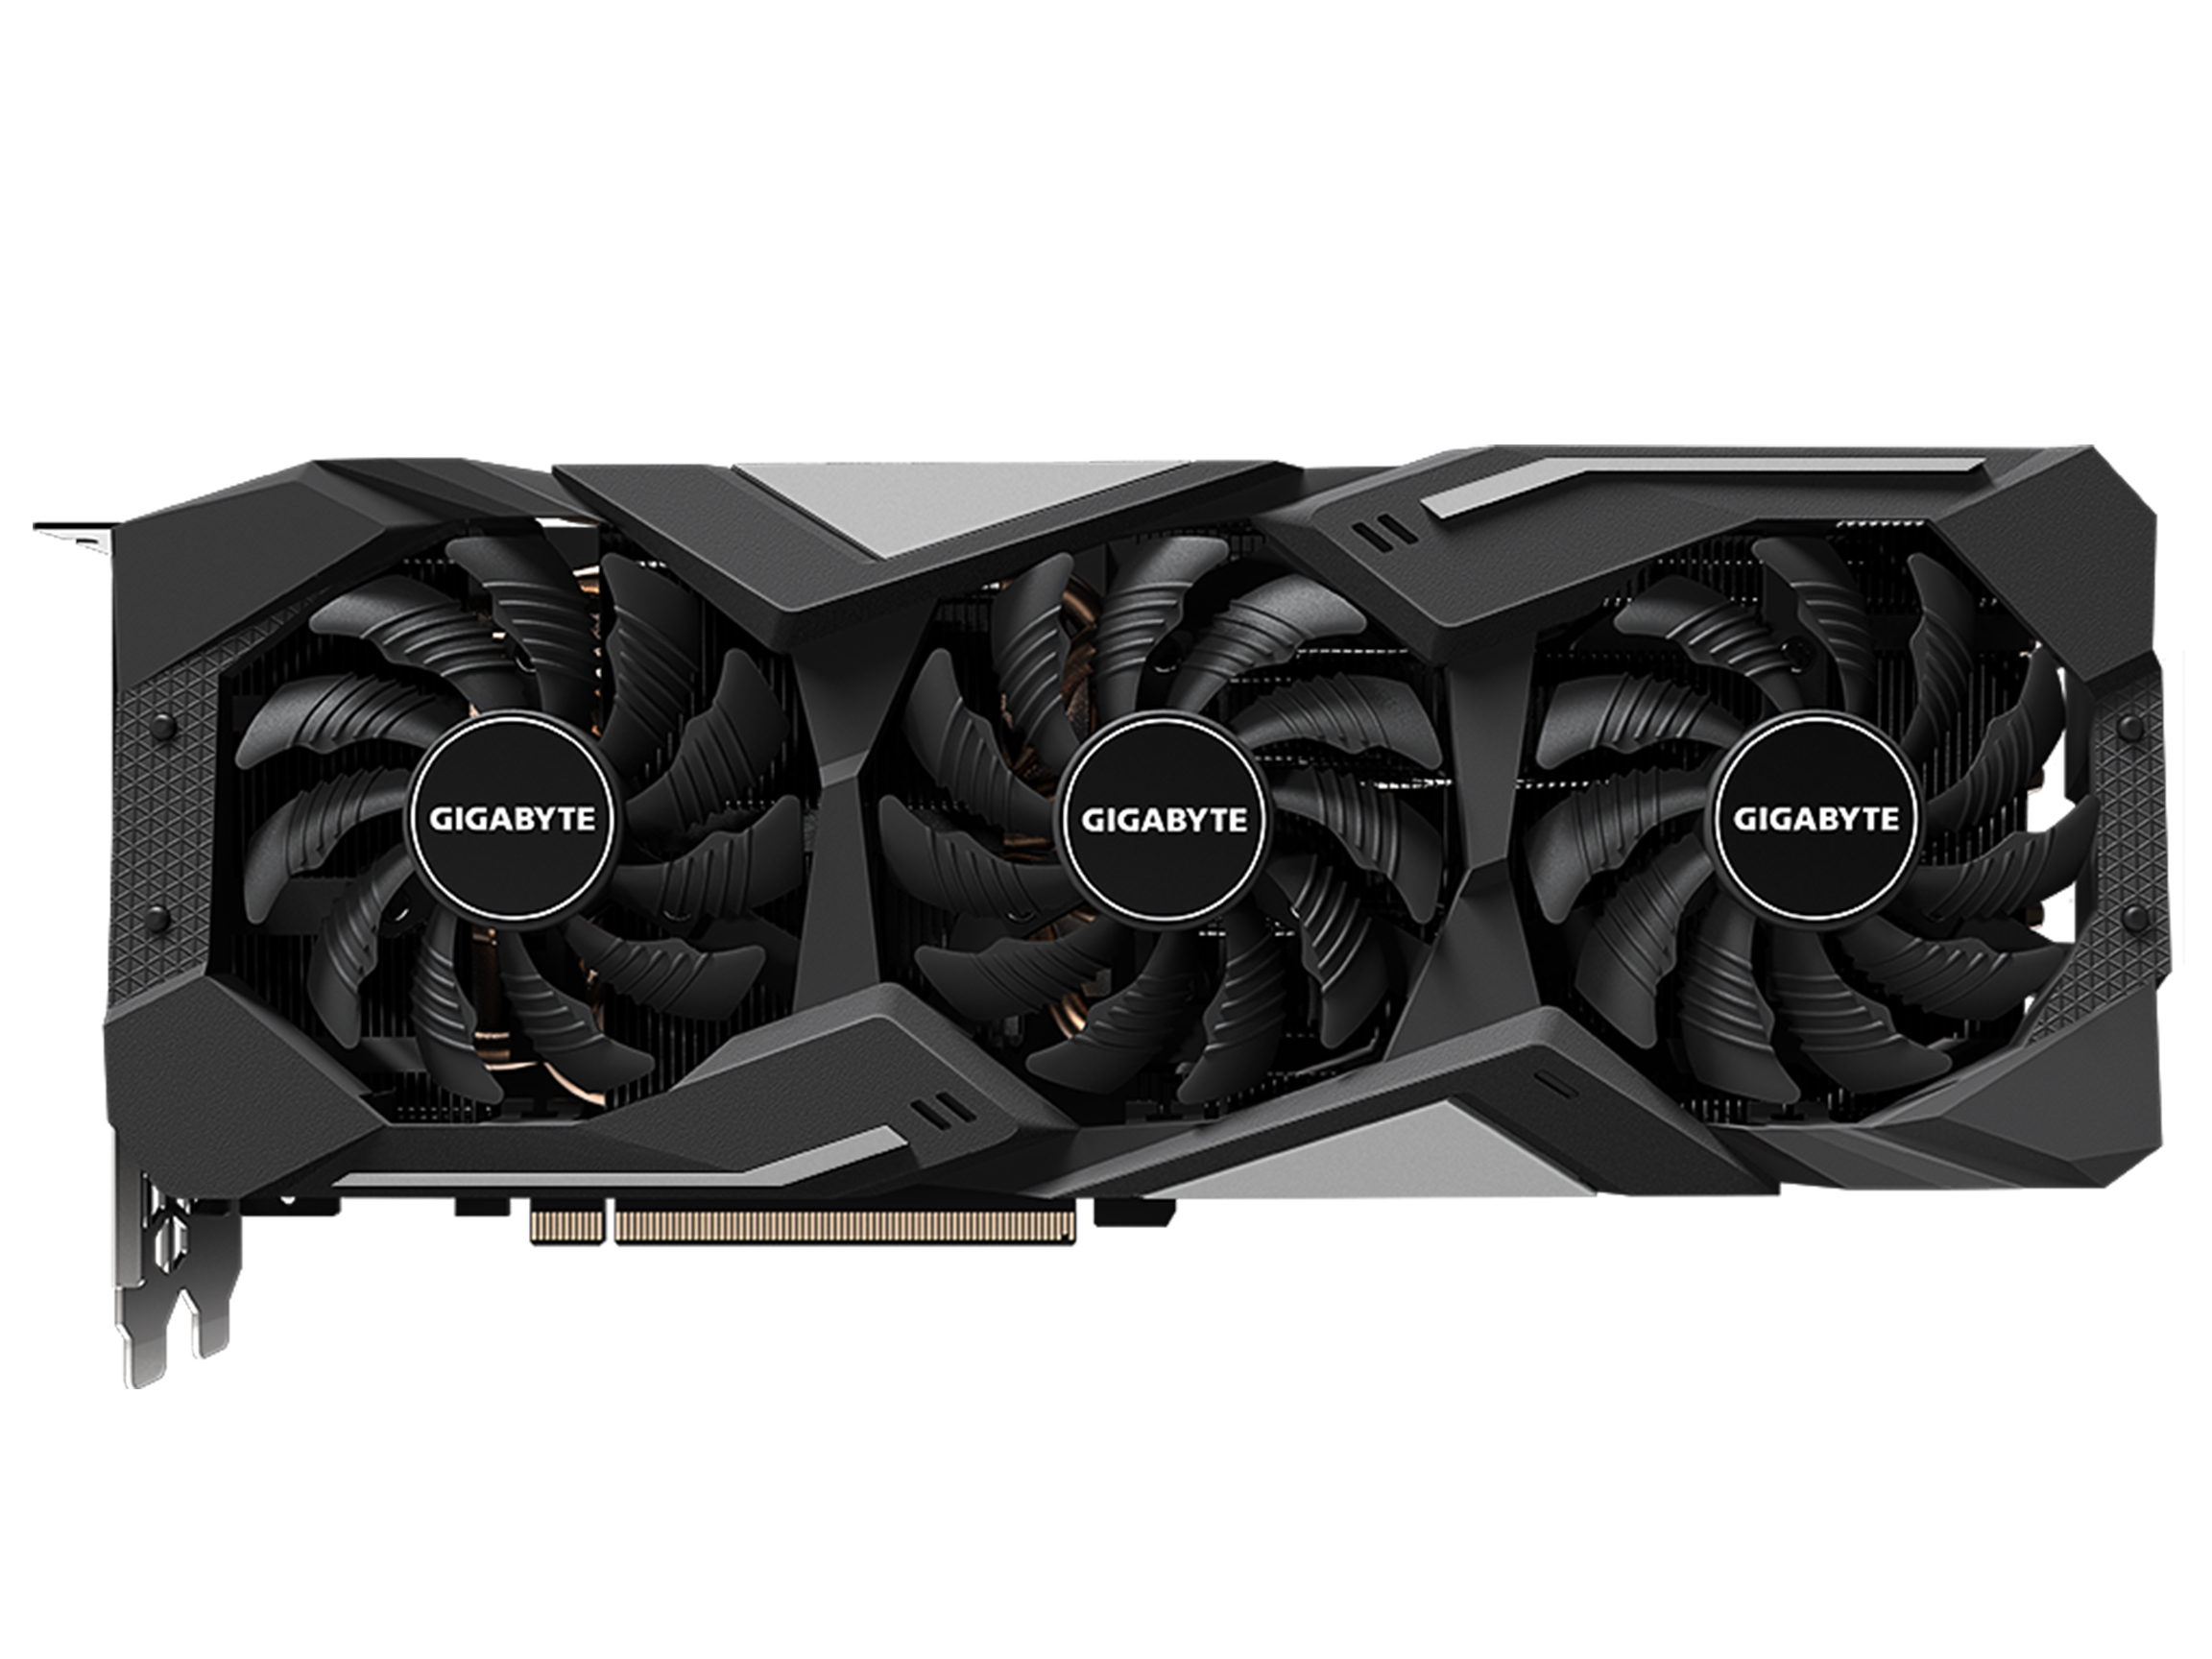 GIGABYTE Radeon RX 5700 XT GAMING OC 8G V2 Graphics Card